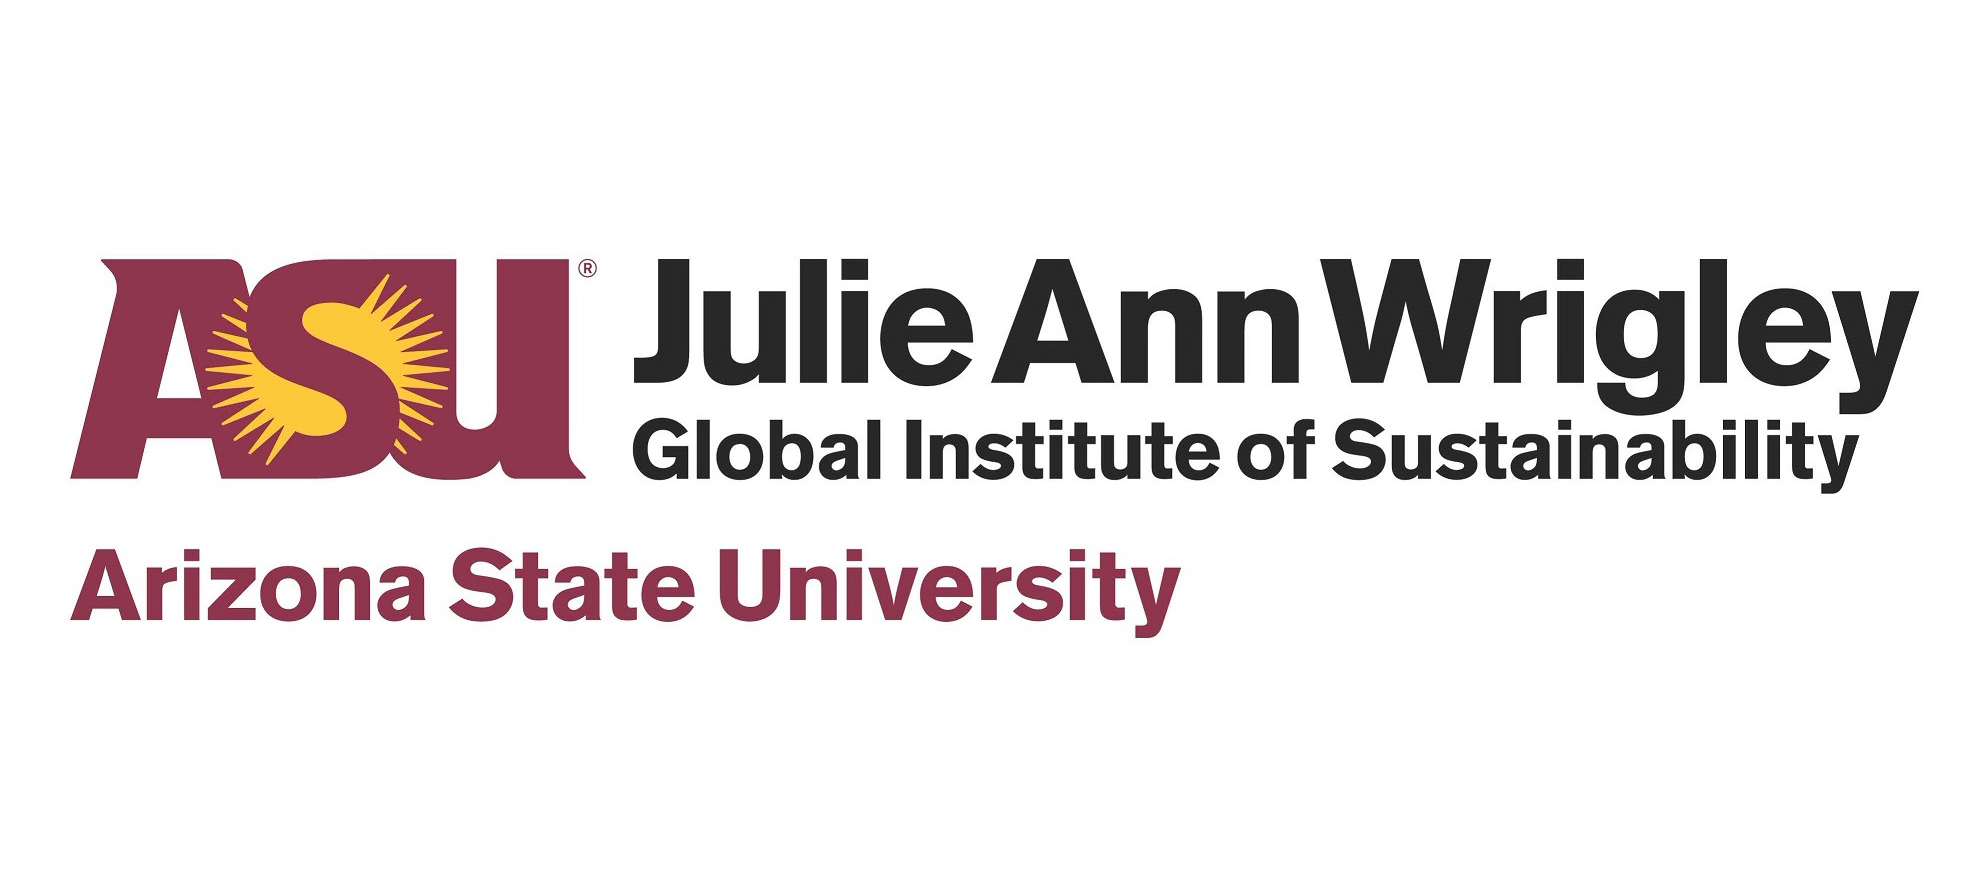 ASU's Julie Ann Wrigley Global Institute of Sustainability logo